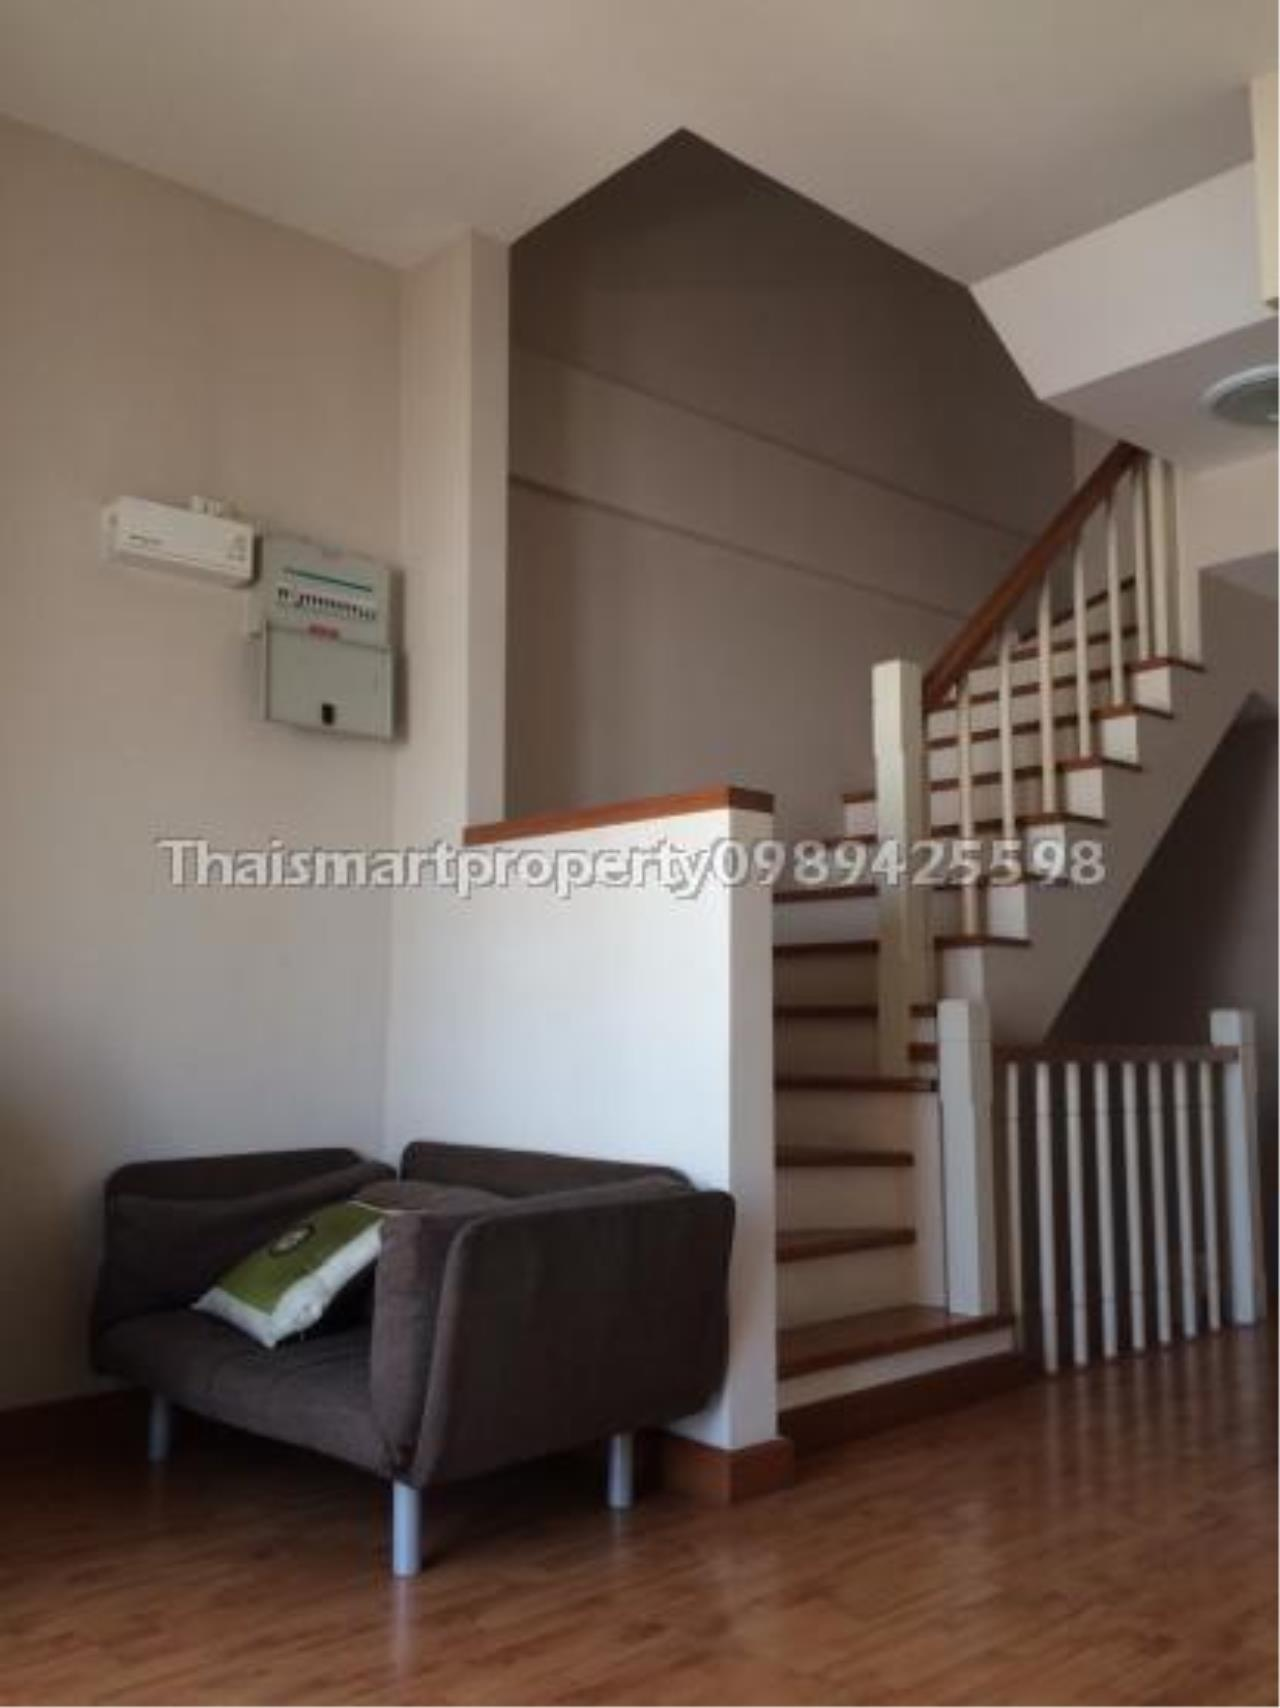 Thai Smart Property Agency's 3 storey townhome for sale, Casa City Sukontasawat 2 2